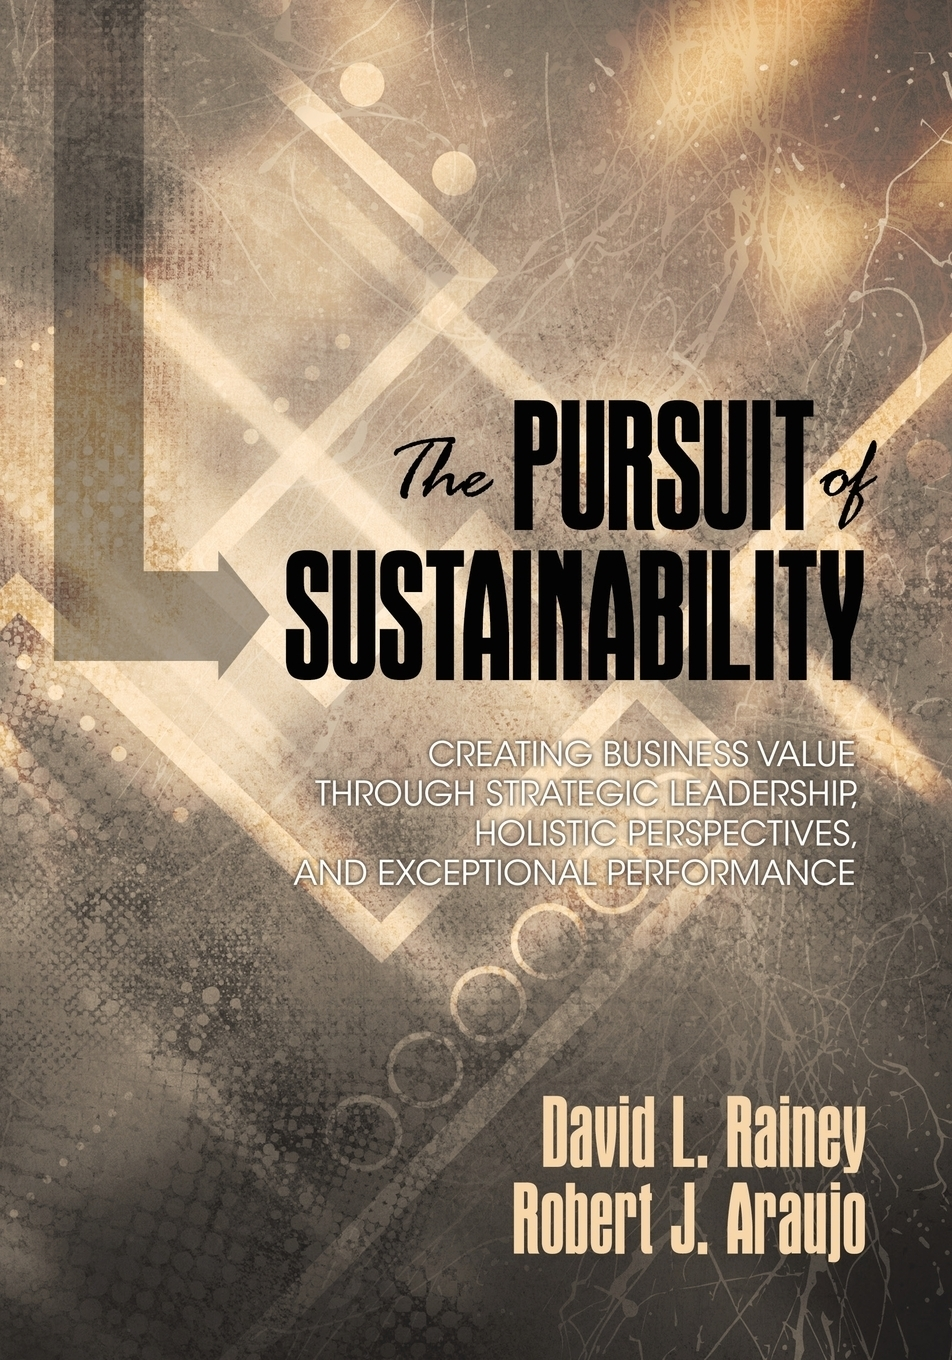 The Pursuit of Sustainability. Creating Business Value through Strategic Leadership, Holistic Perspectives, and Exceptional Performance